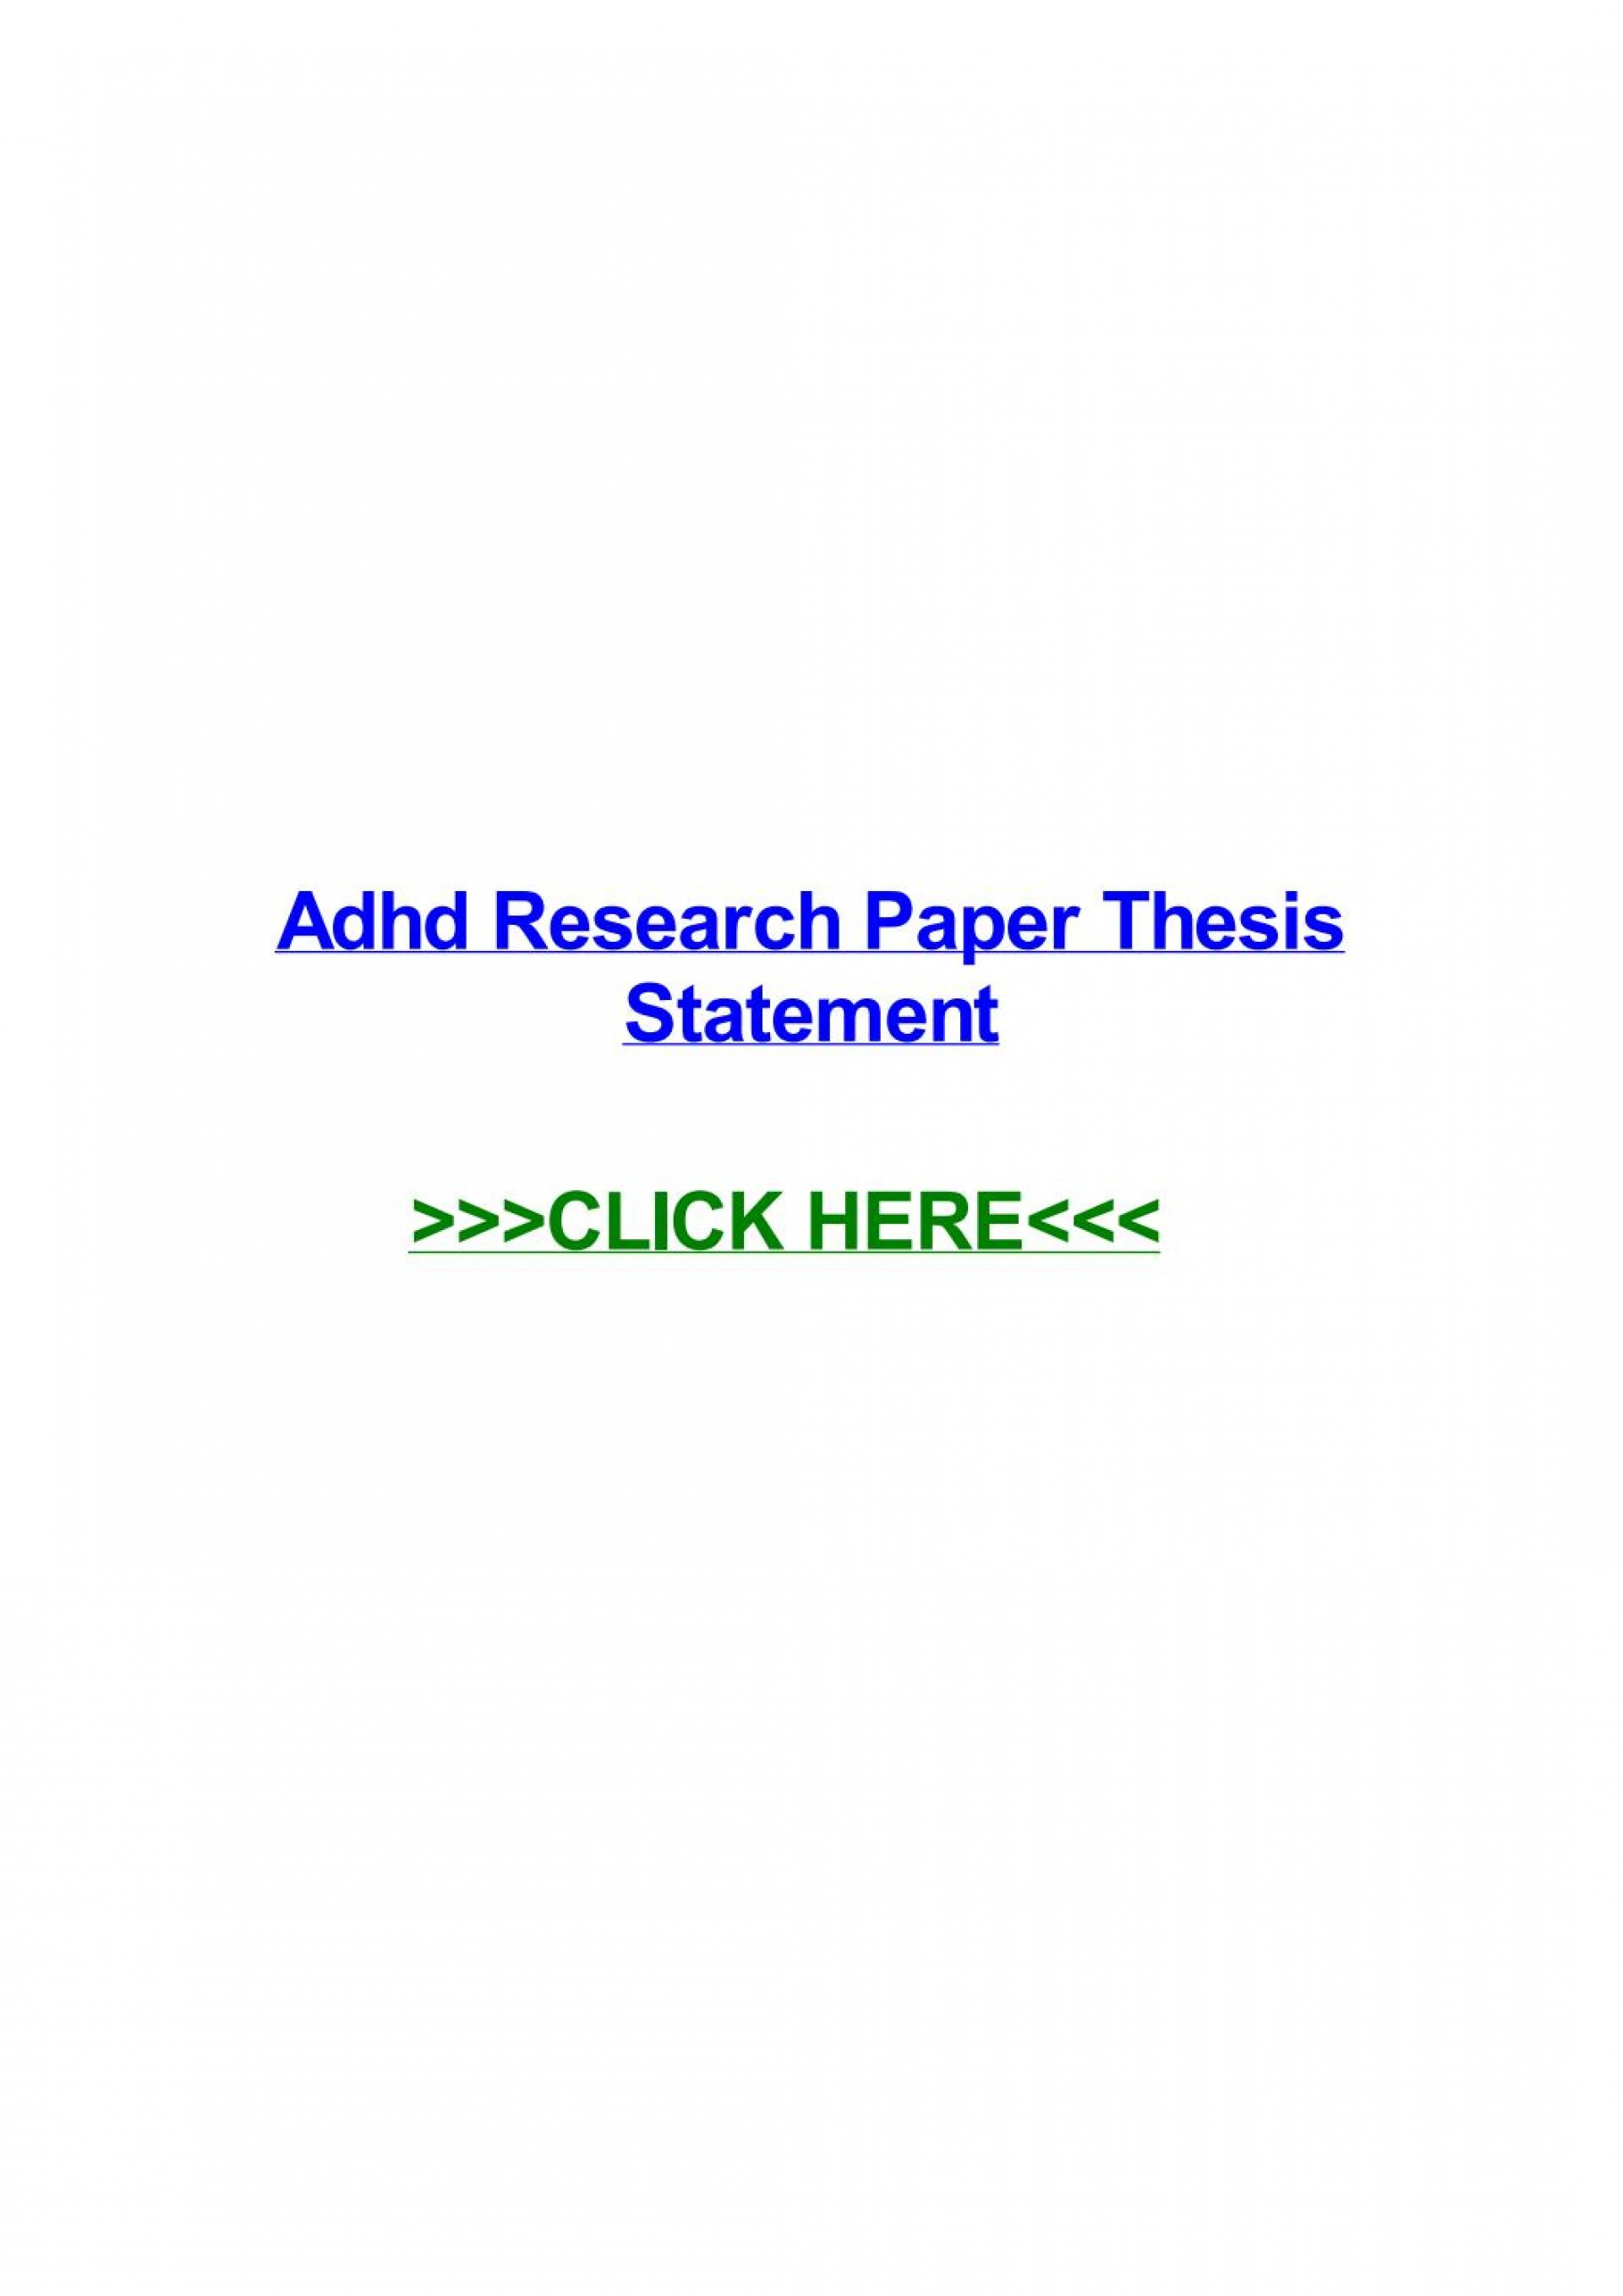 013 Adhd Research Paper Thesis Statement Page 1 Fantastic 1920